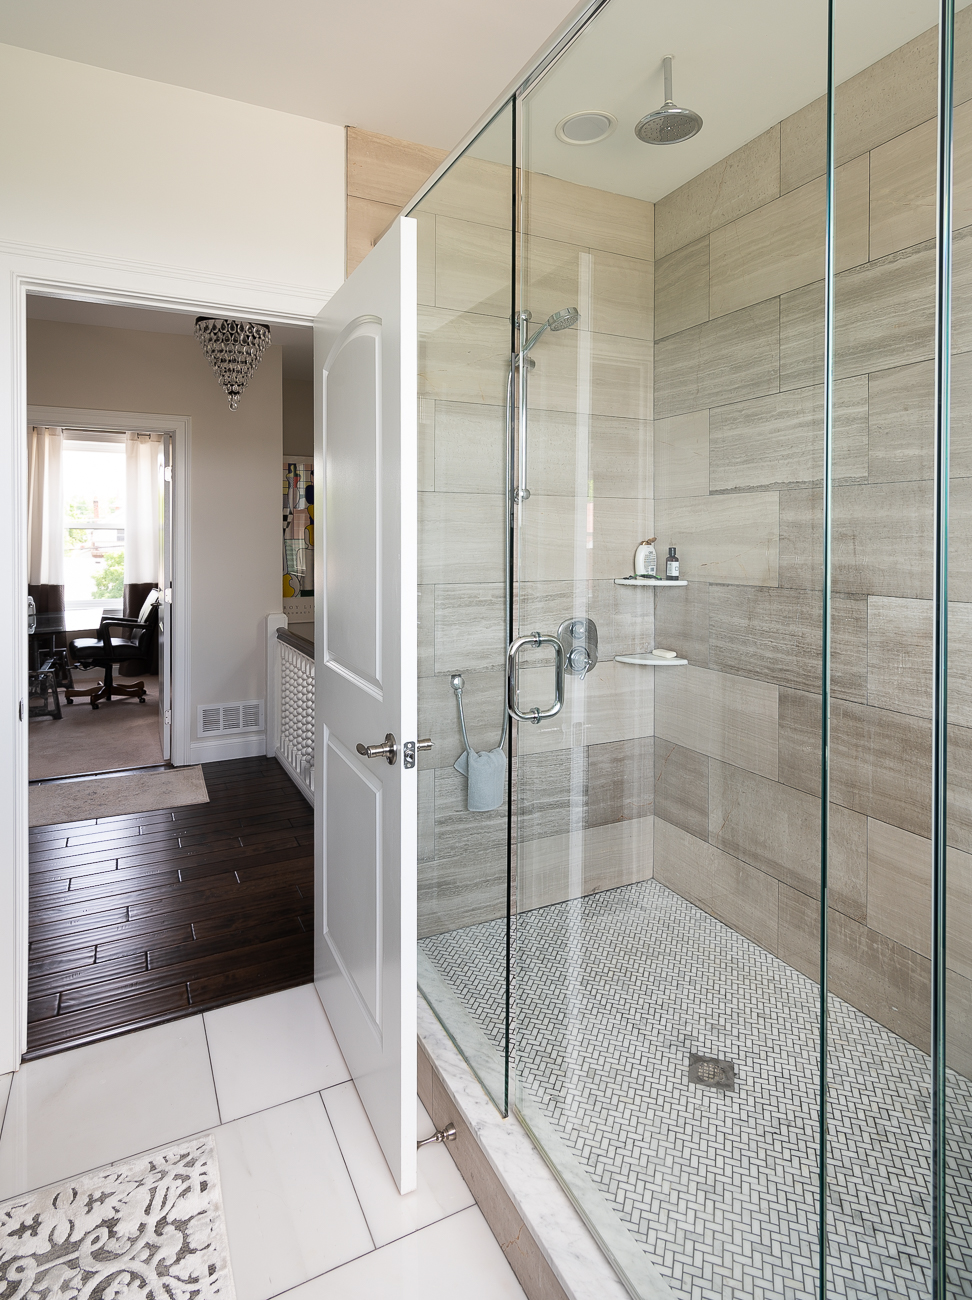 Even the shower is curtainless to maintain a line of sight with the beautiful view. / Image: Phil Armstrong, Cincinnati Refined // Published: 5.31.19